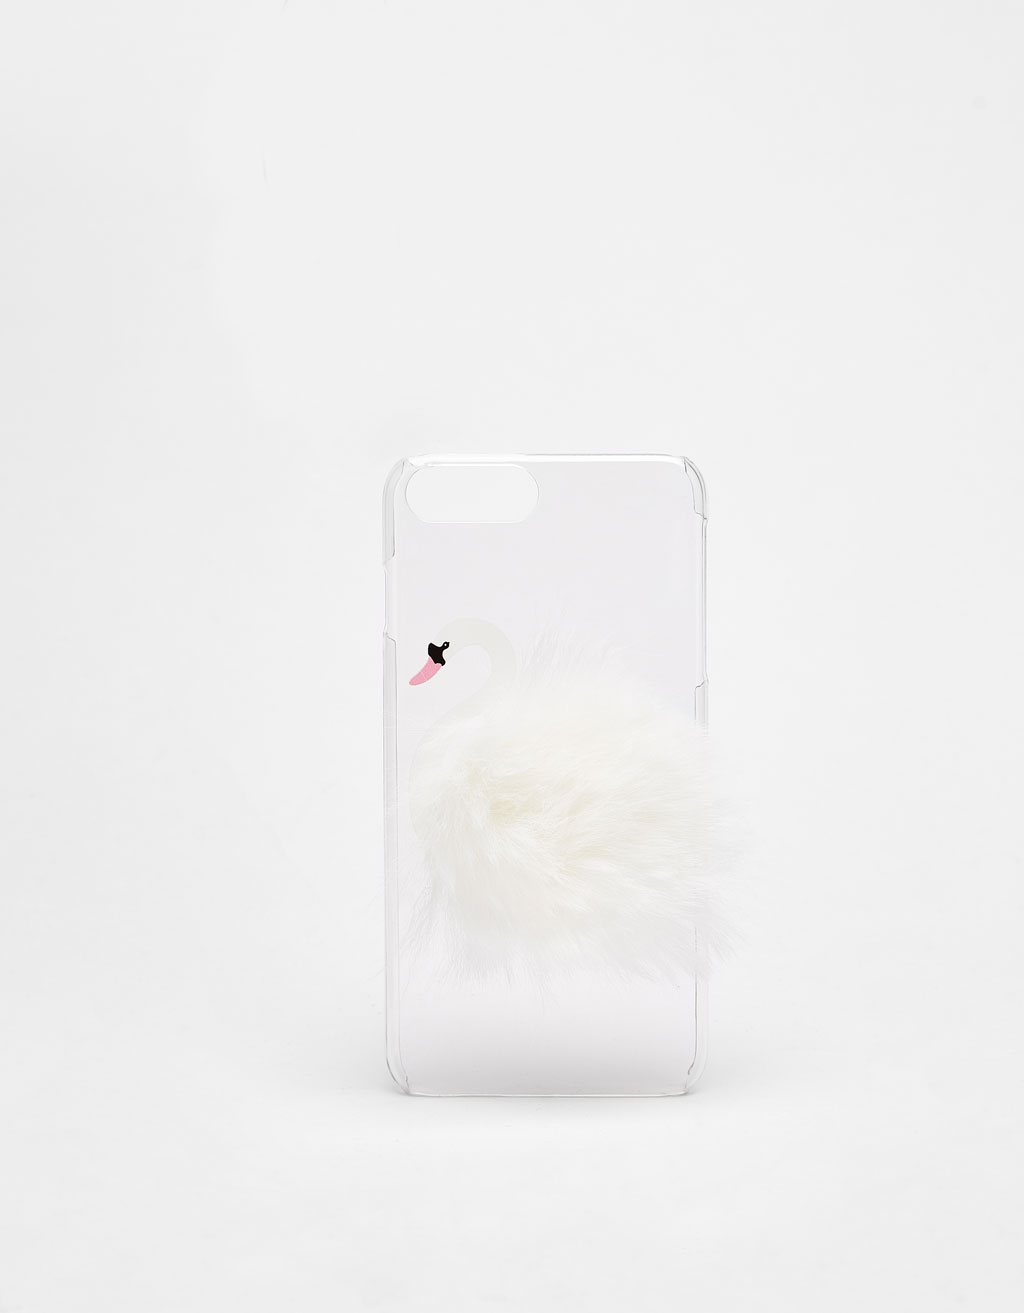 Swan-shaped iPhone 6/6s/7/8 case with pompom